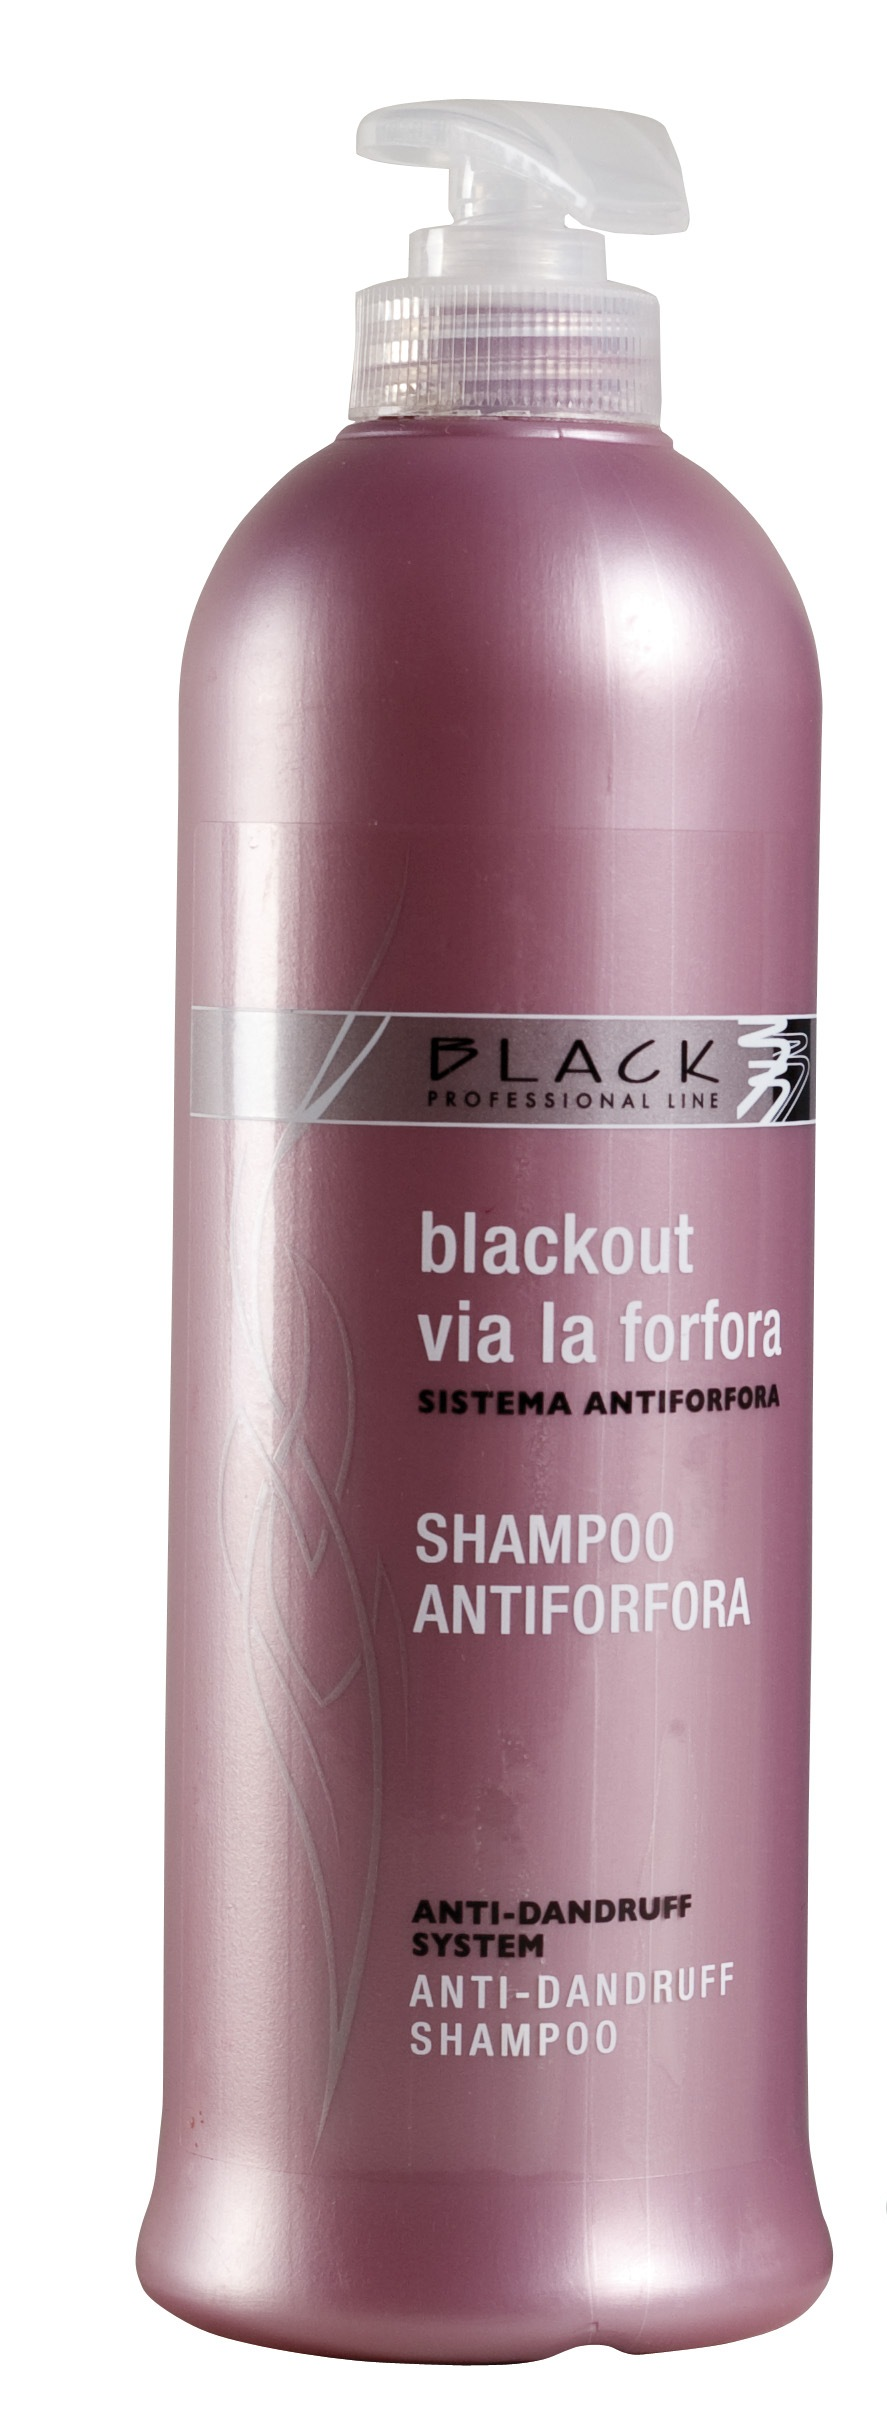 Black Anti-Dandruff Shampoo 500 ml